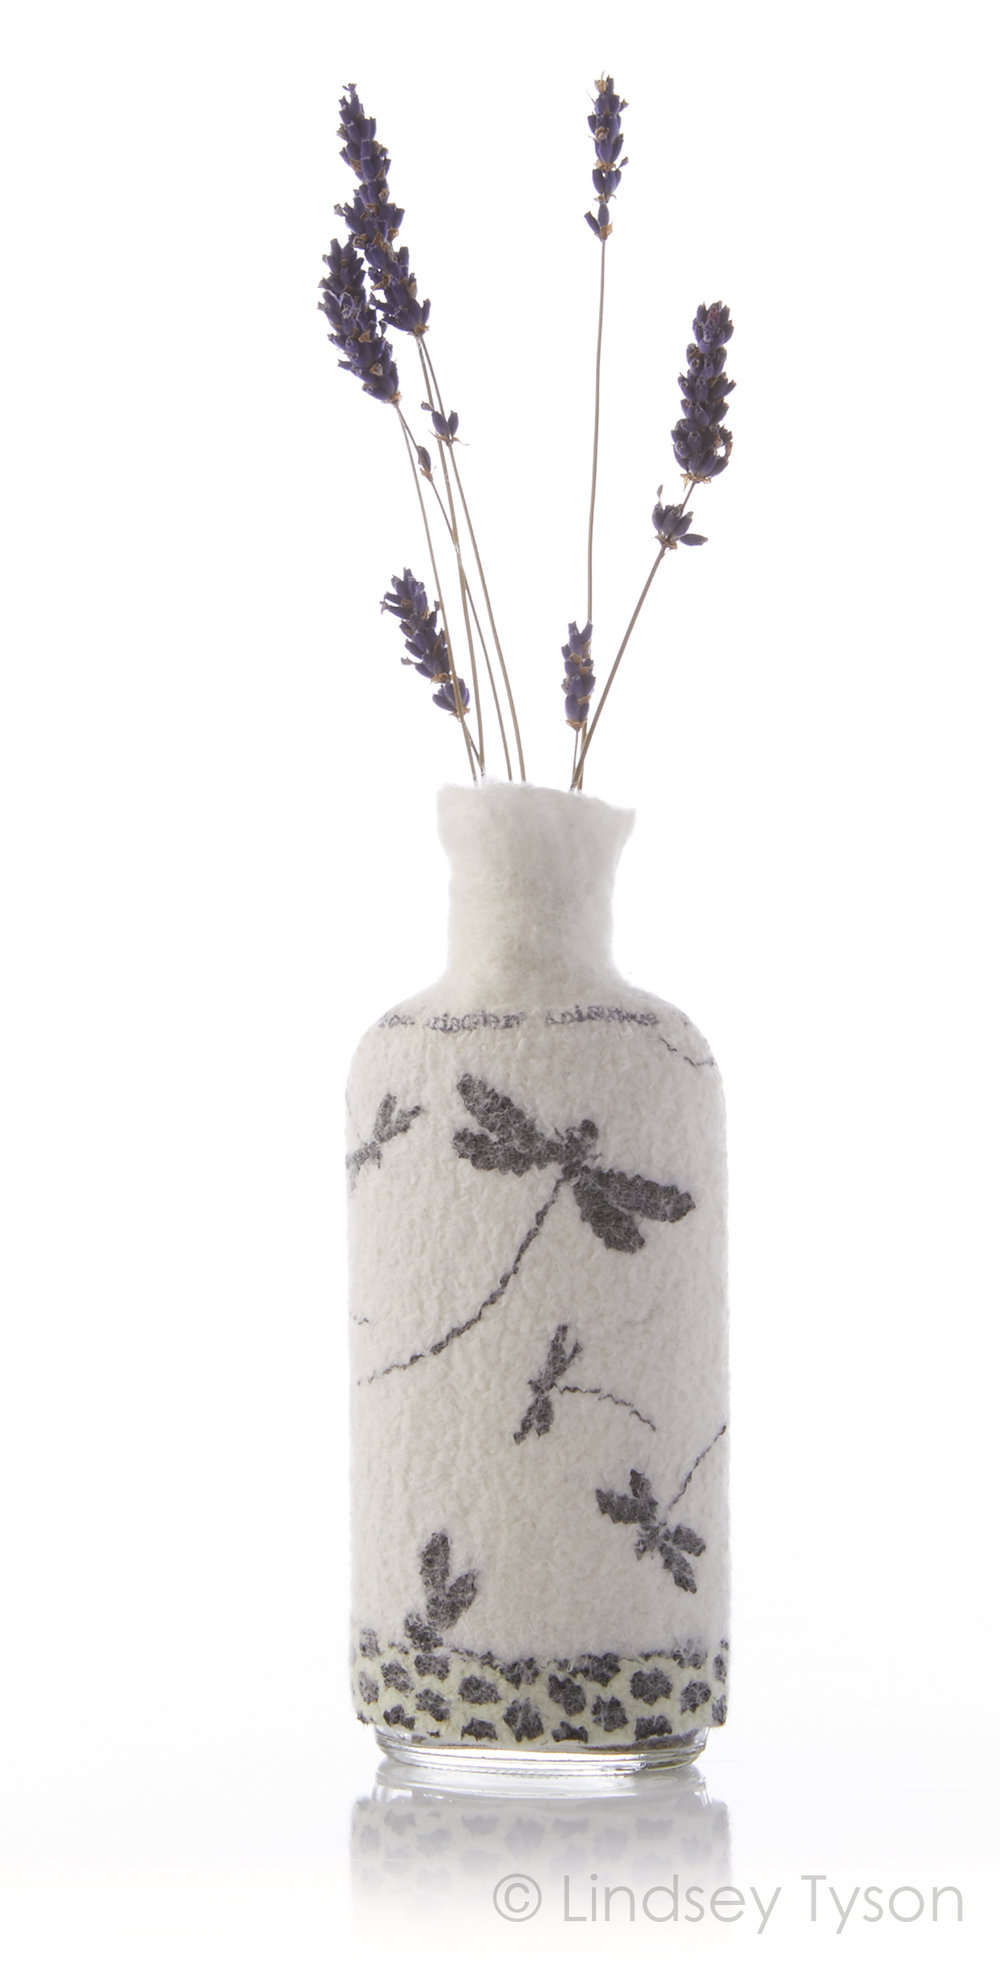 dragonfly bottle with lavender.jpg